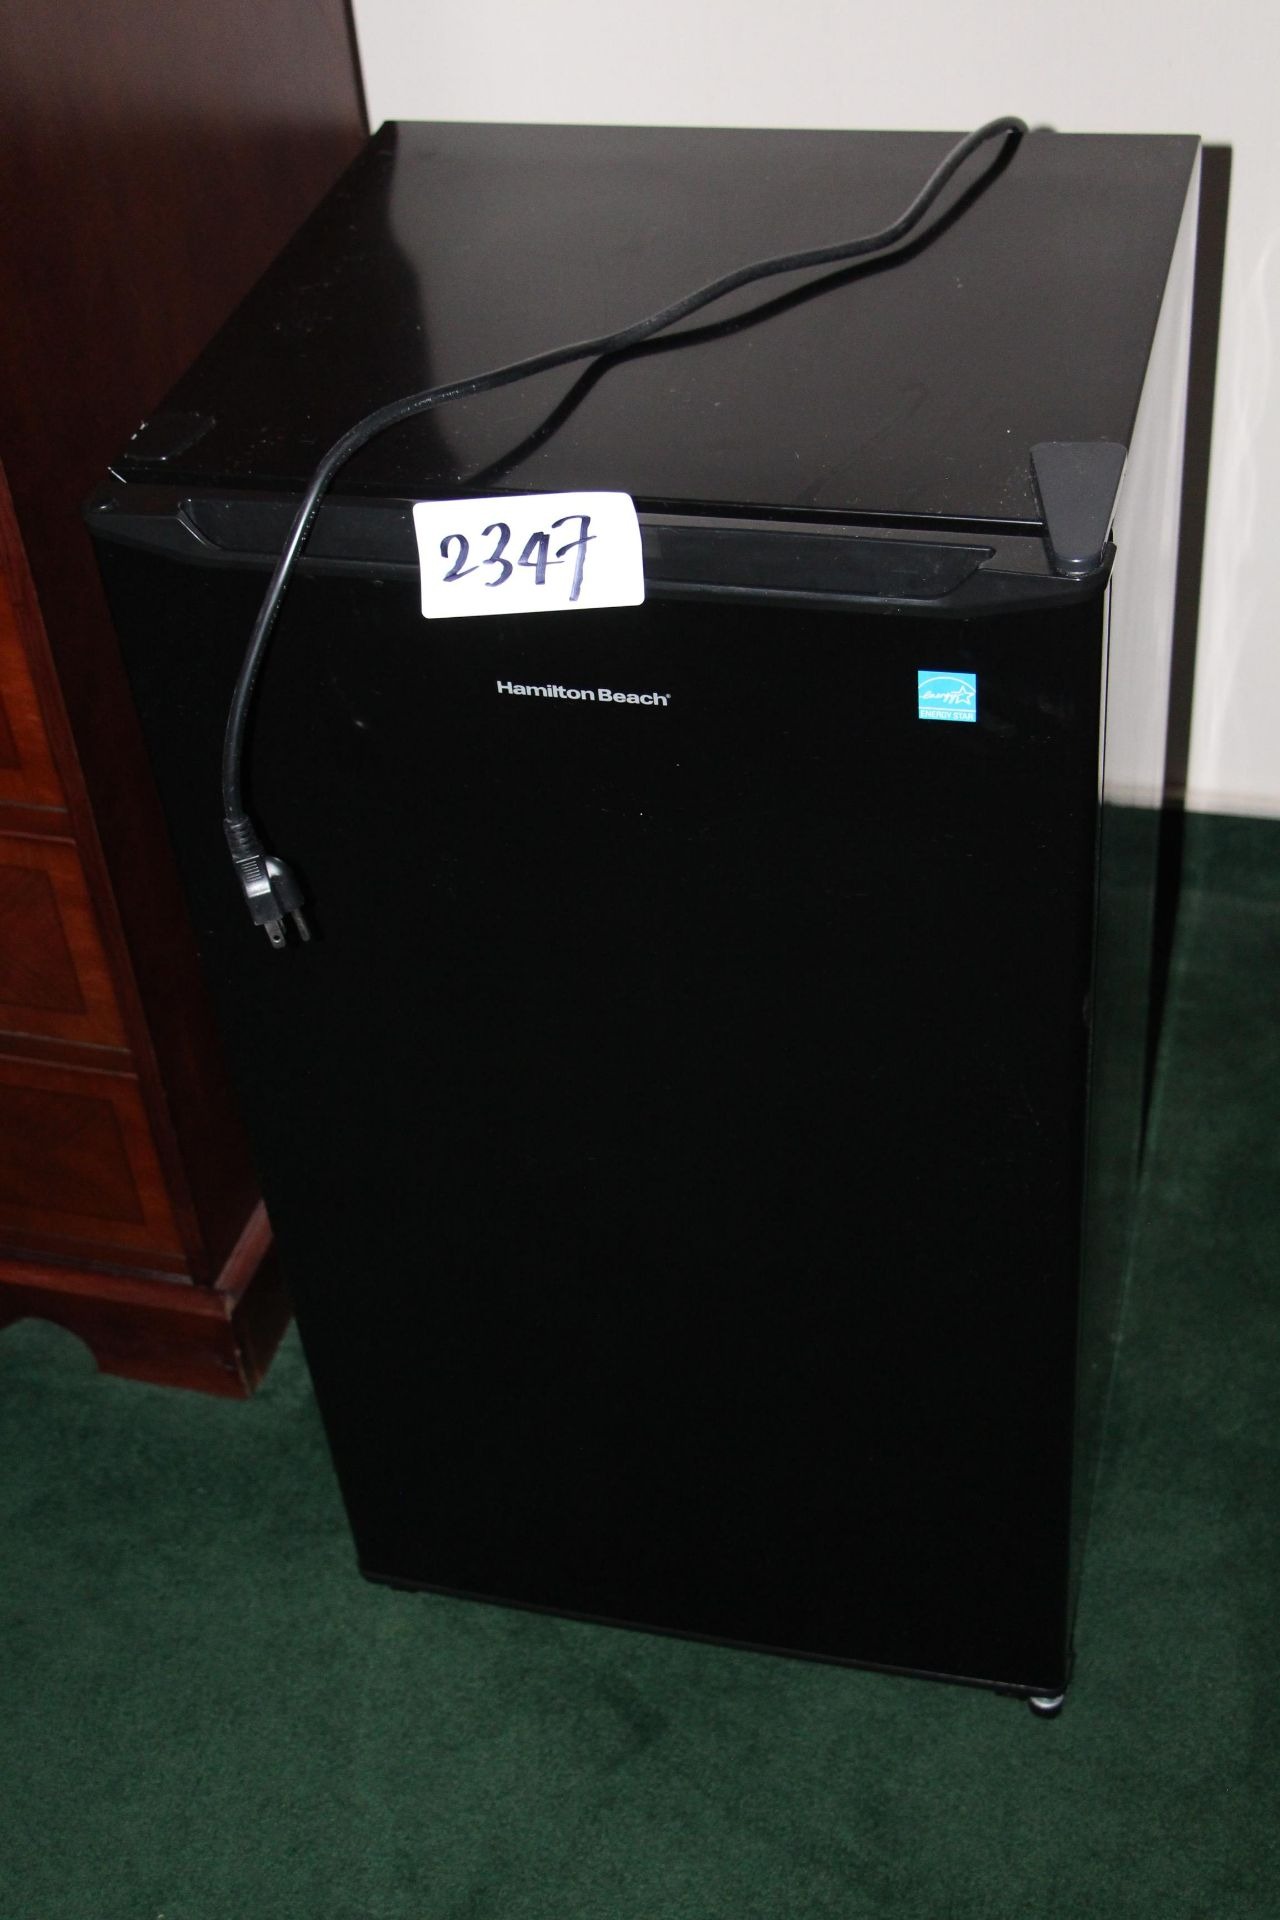 Lot 2347 - Hamilton beach bar fridge